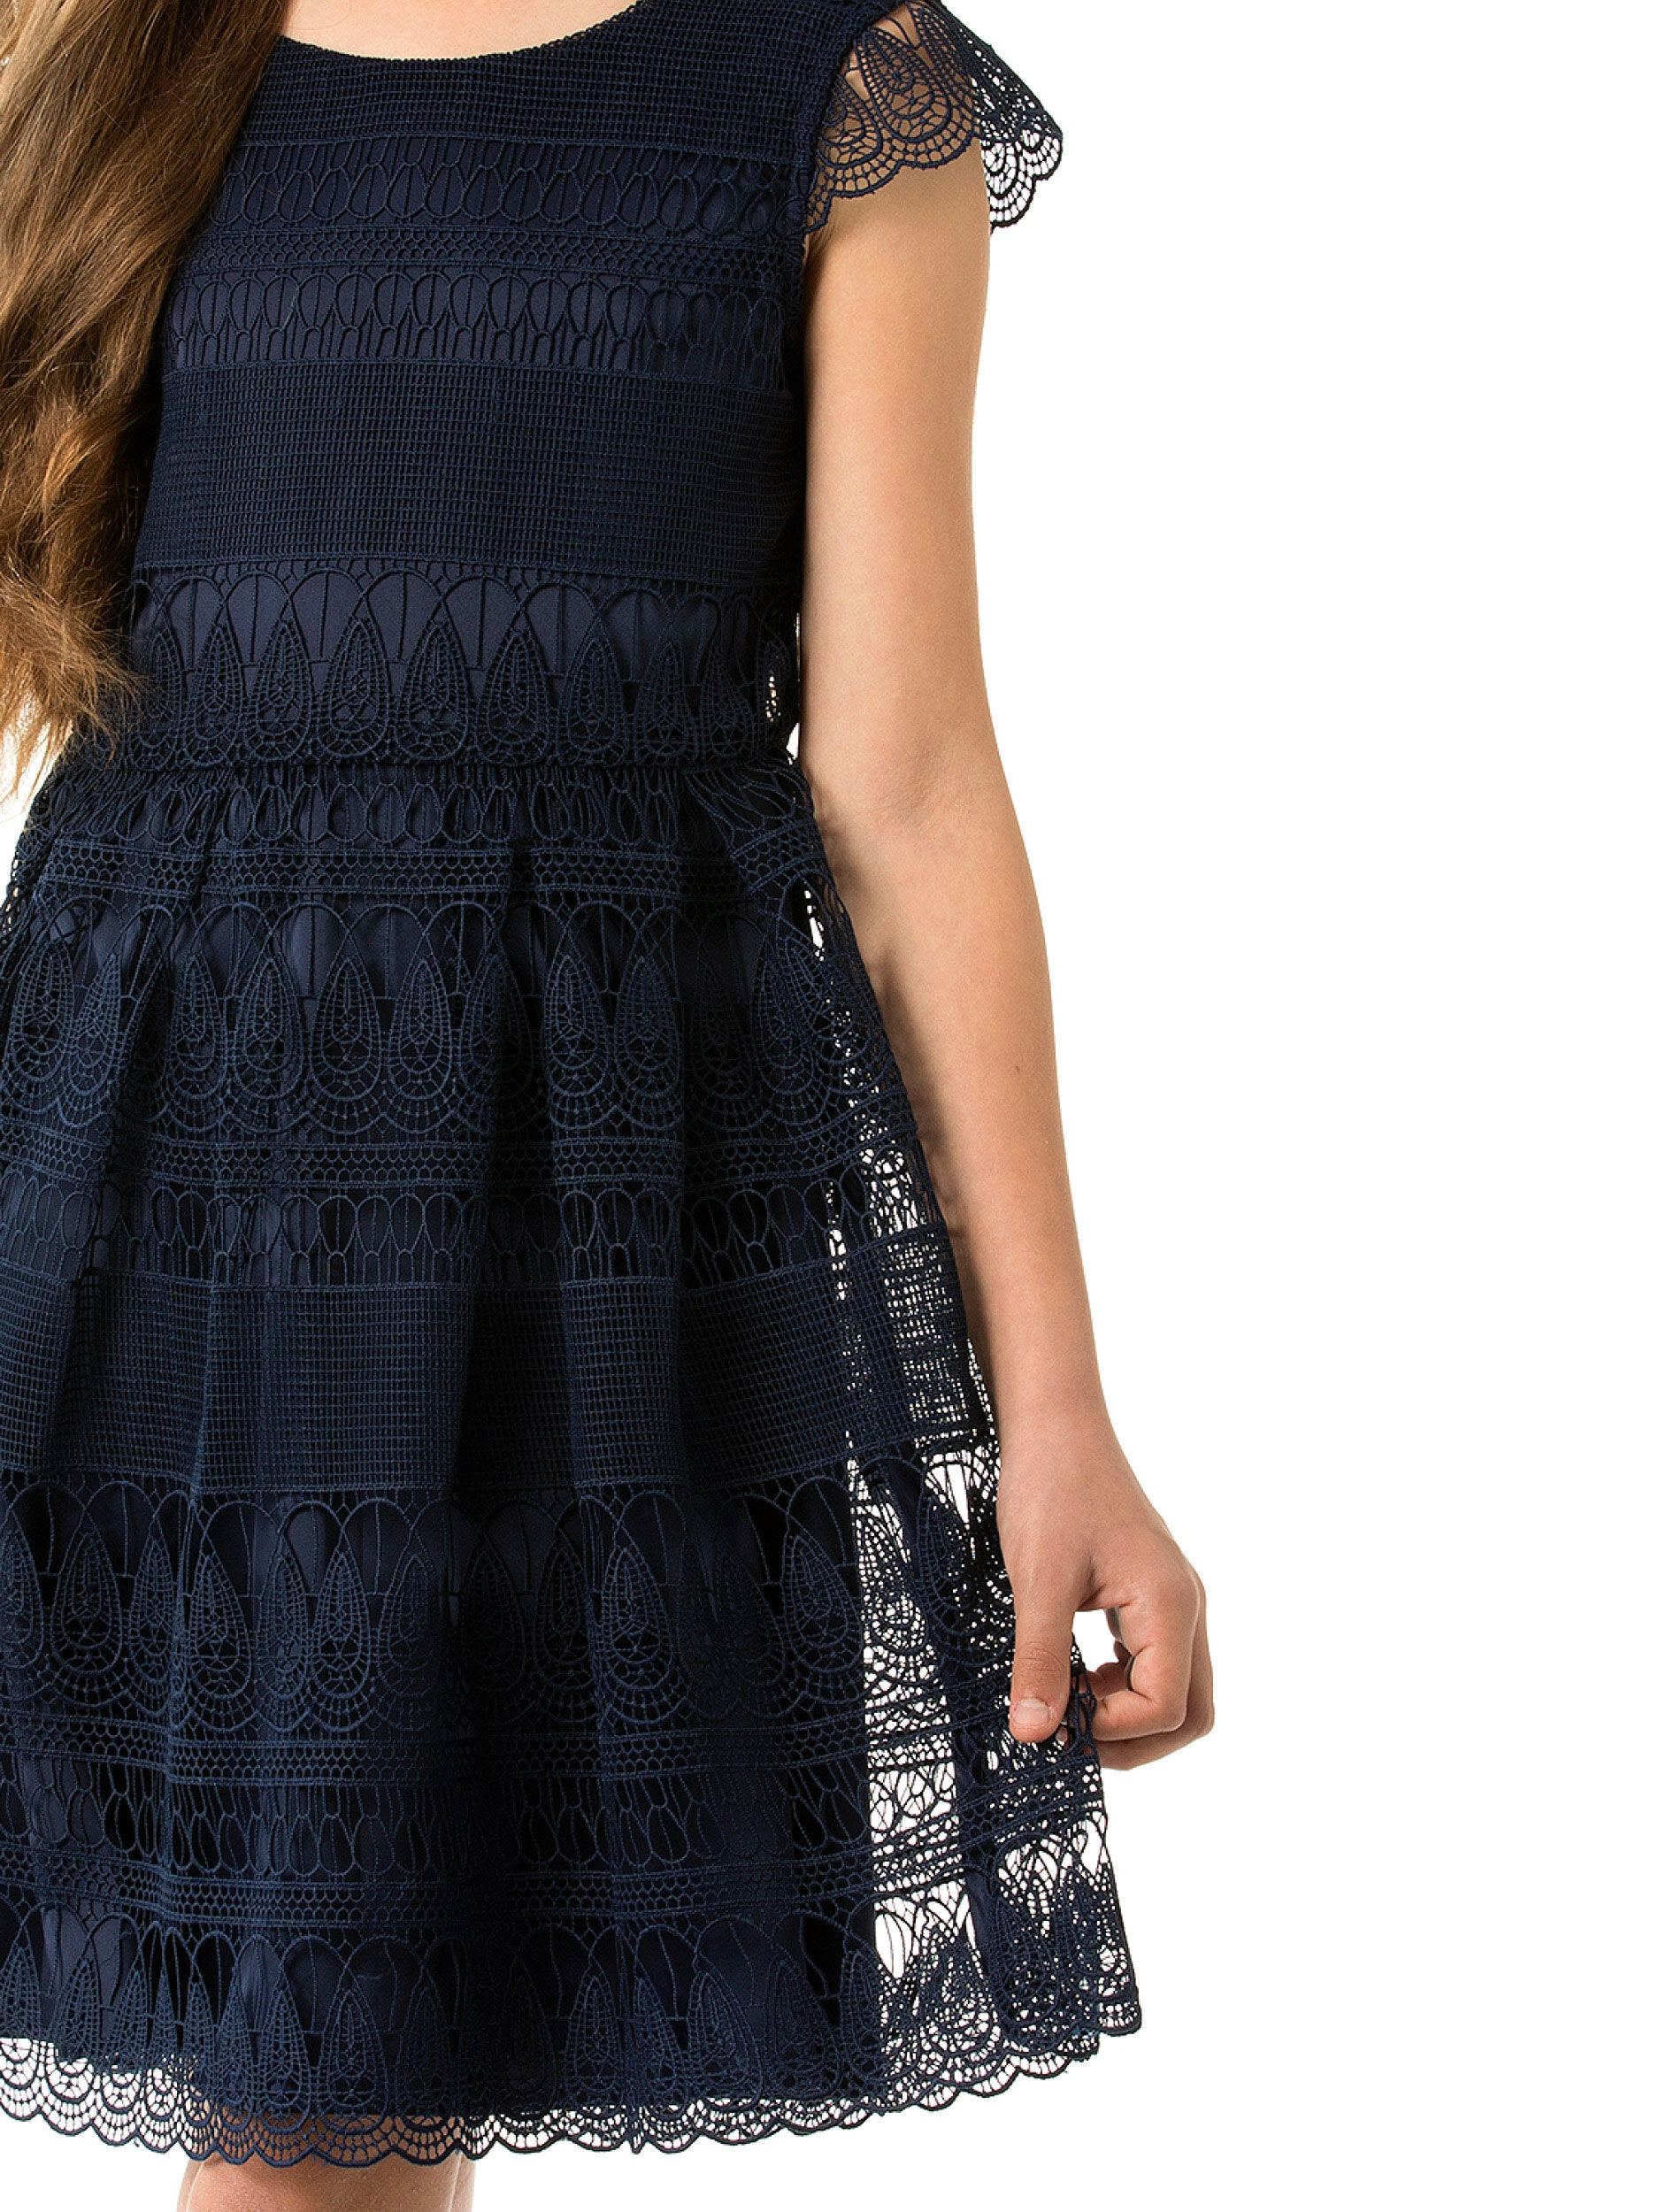 8-14 Girls Review Lace Dress